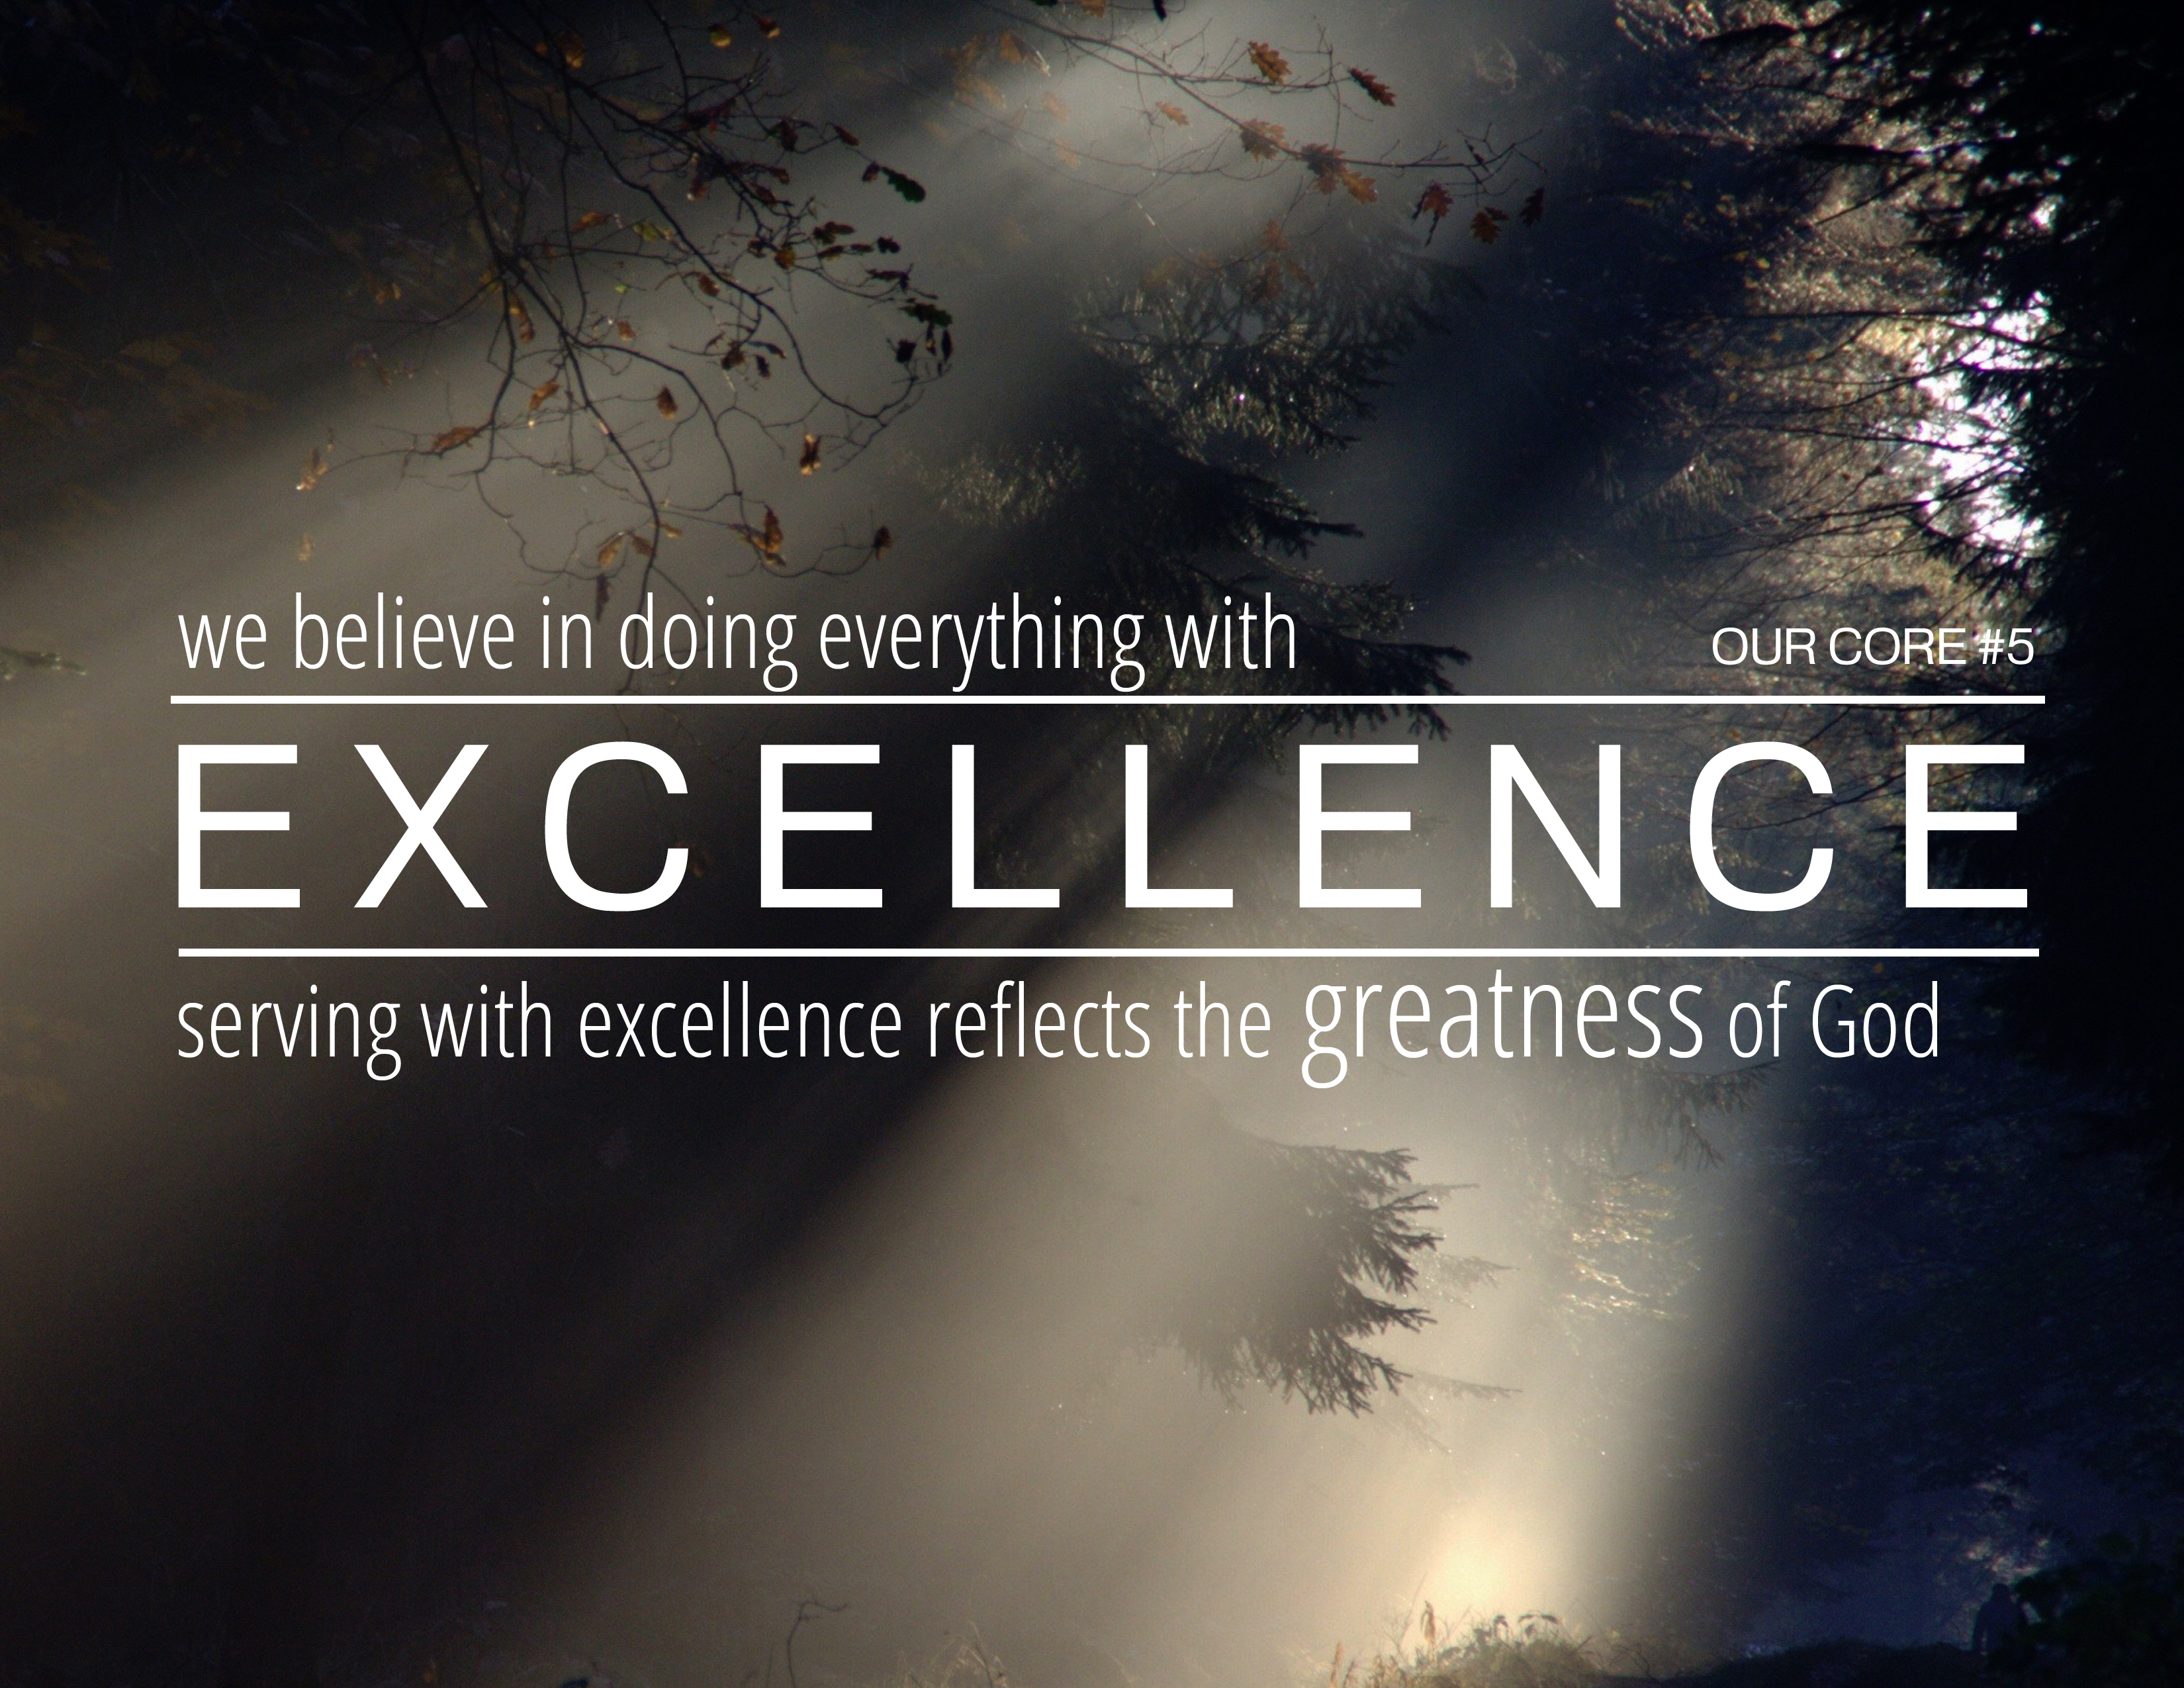 We believe in doing everything with excellence.  Excellence reflects the greatness of God.